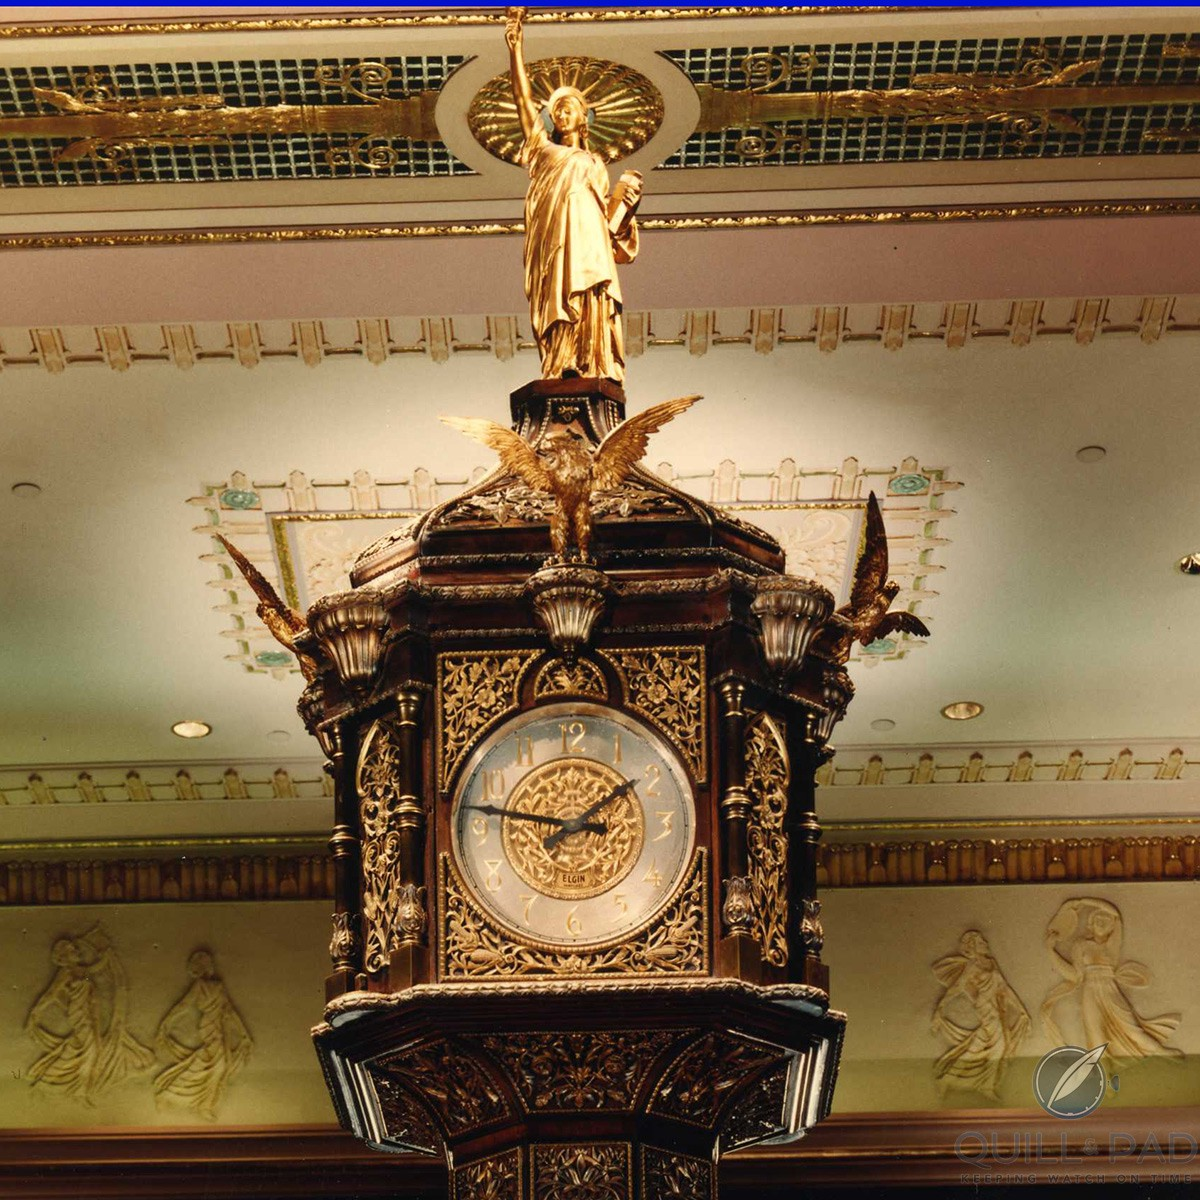 Statue of Lady Liberty on top of the clock in the lobby of the Waldorf Astoria hotel in New York